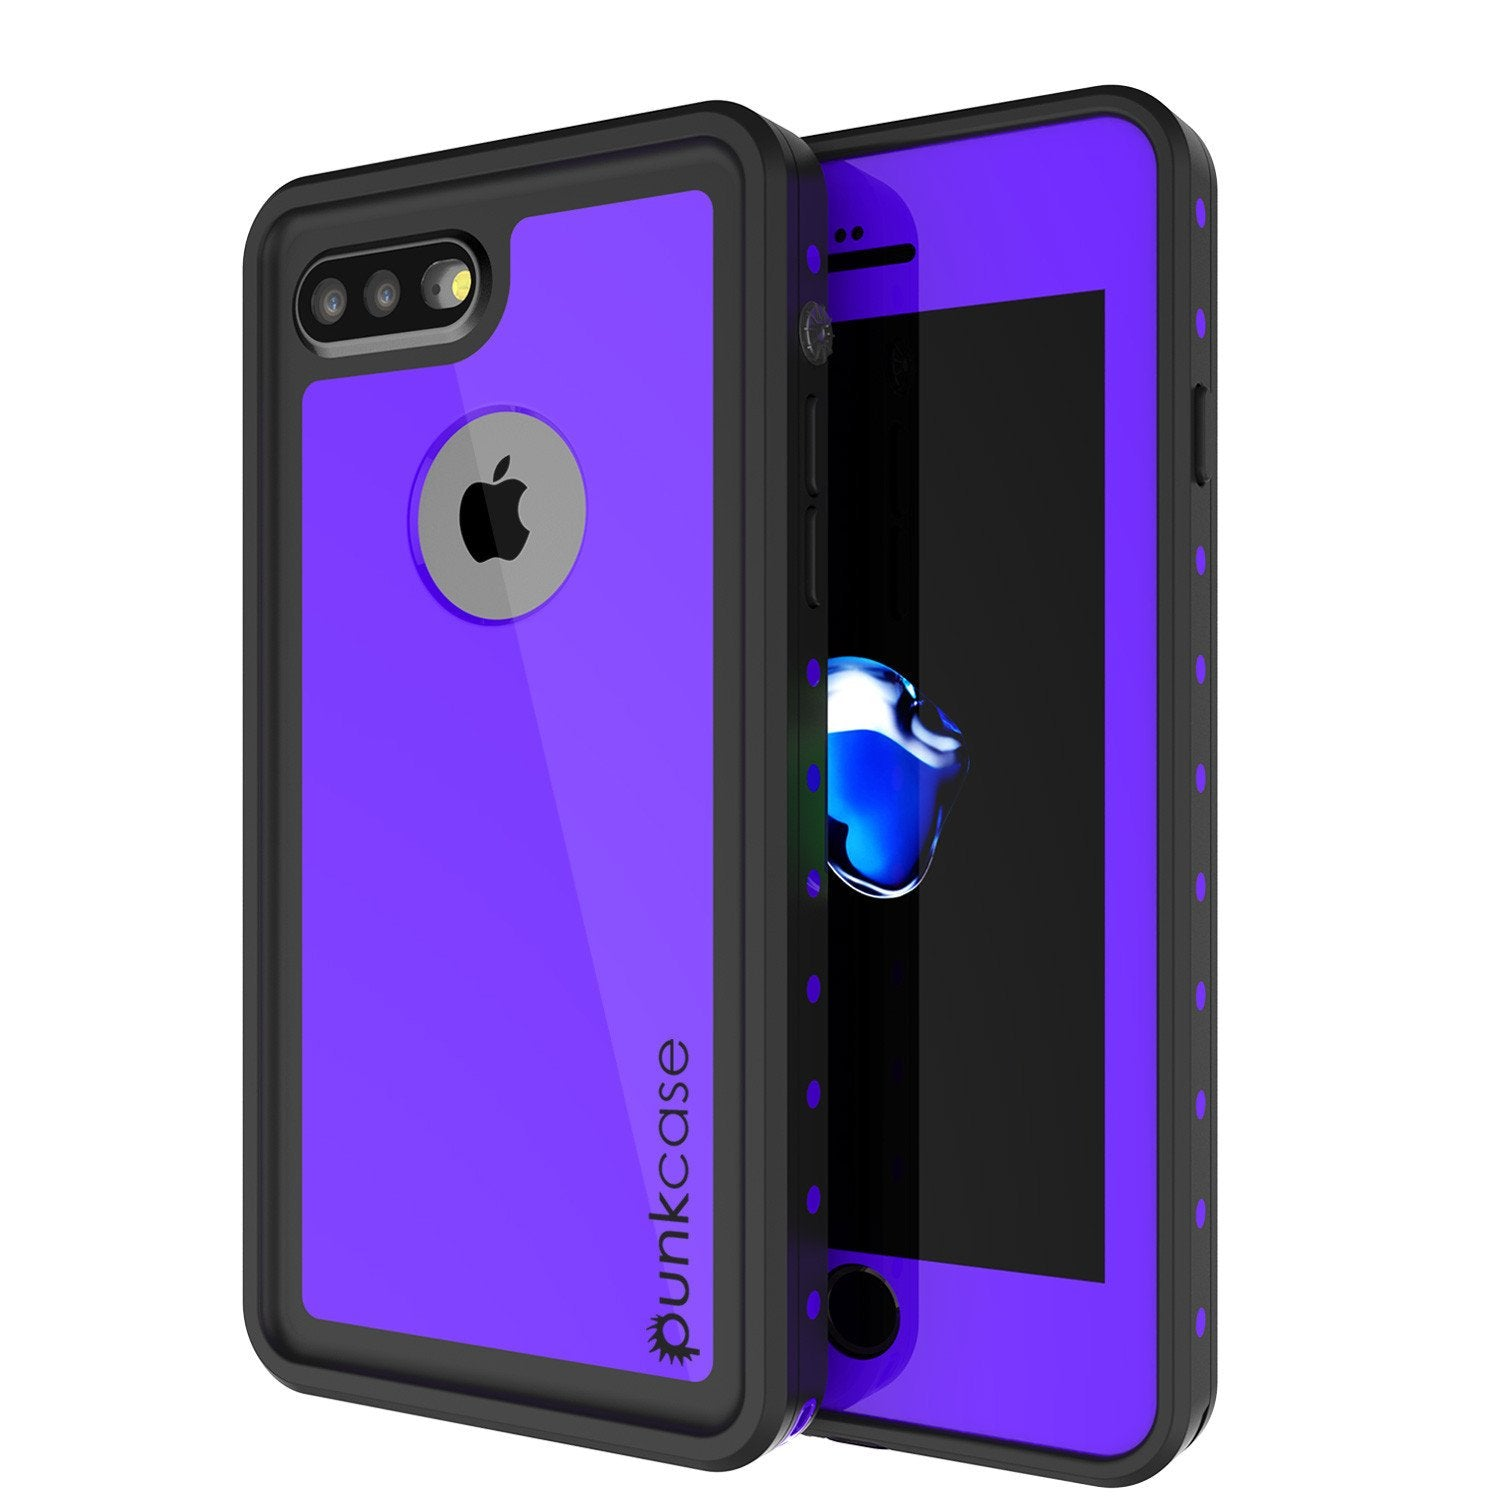 iPhone 8+ Plus Waterproof Case, Punkcase [StudStar Series] [Purple] [Slim Fit] [IP68 Certified] [Shockproof] [Dirtproof] Armor Cover